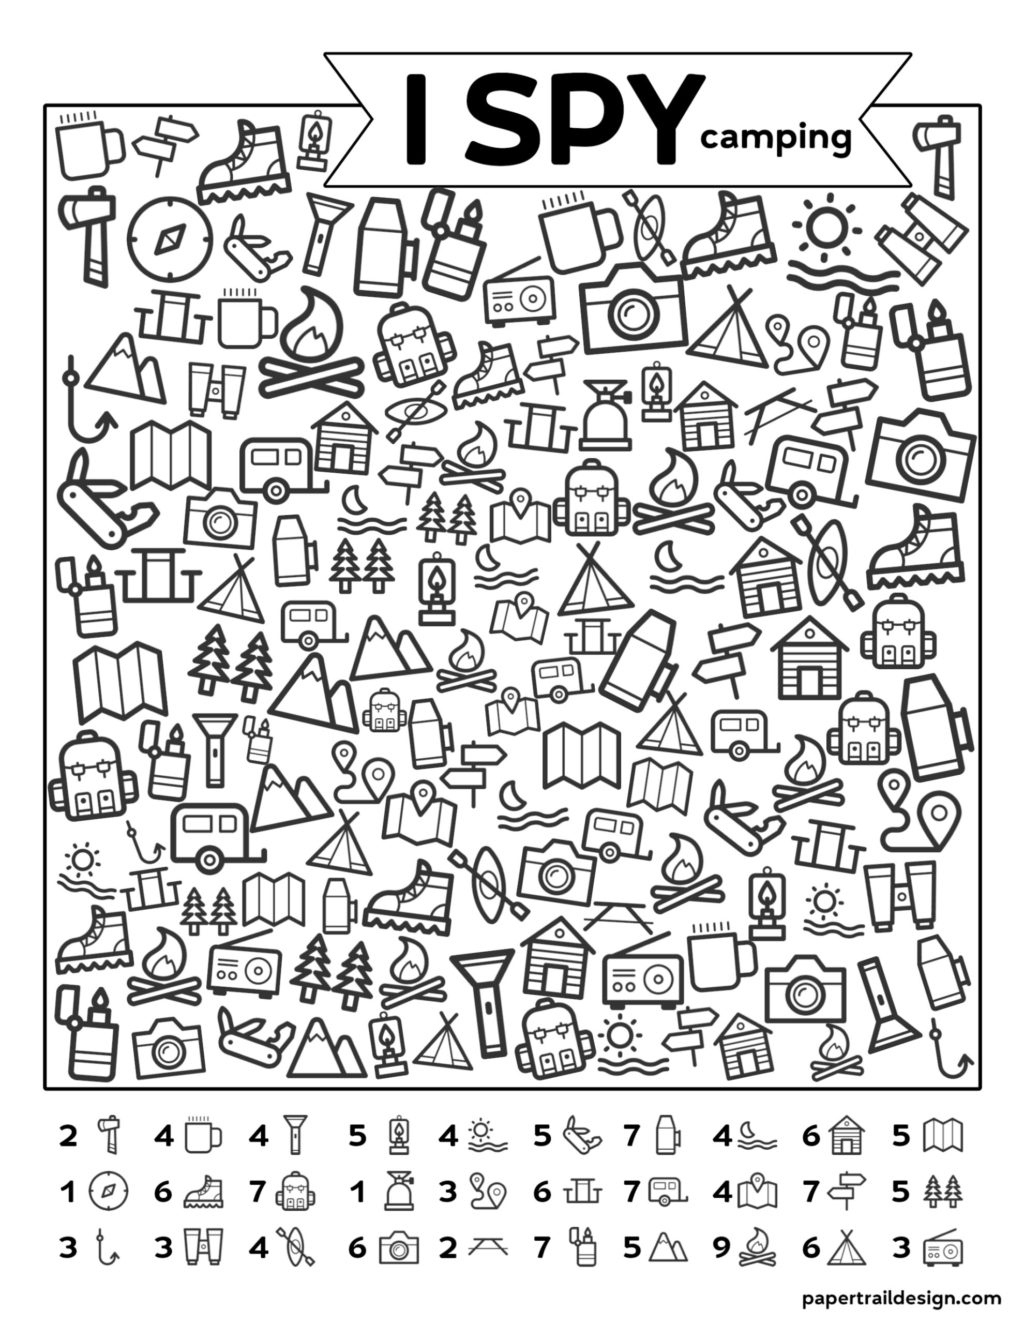 Worksheet ~ Freetable I Spy Camping Kids Activity Paper